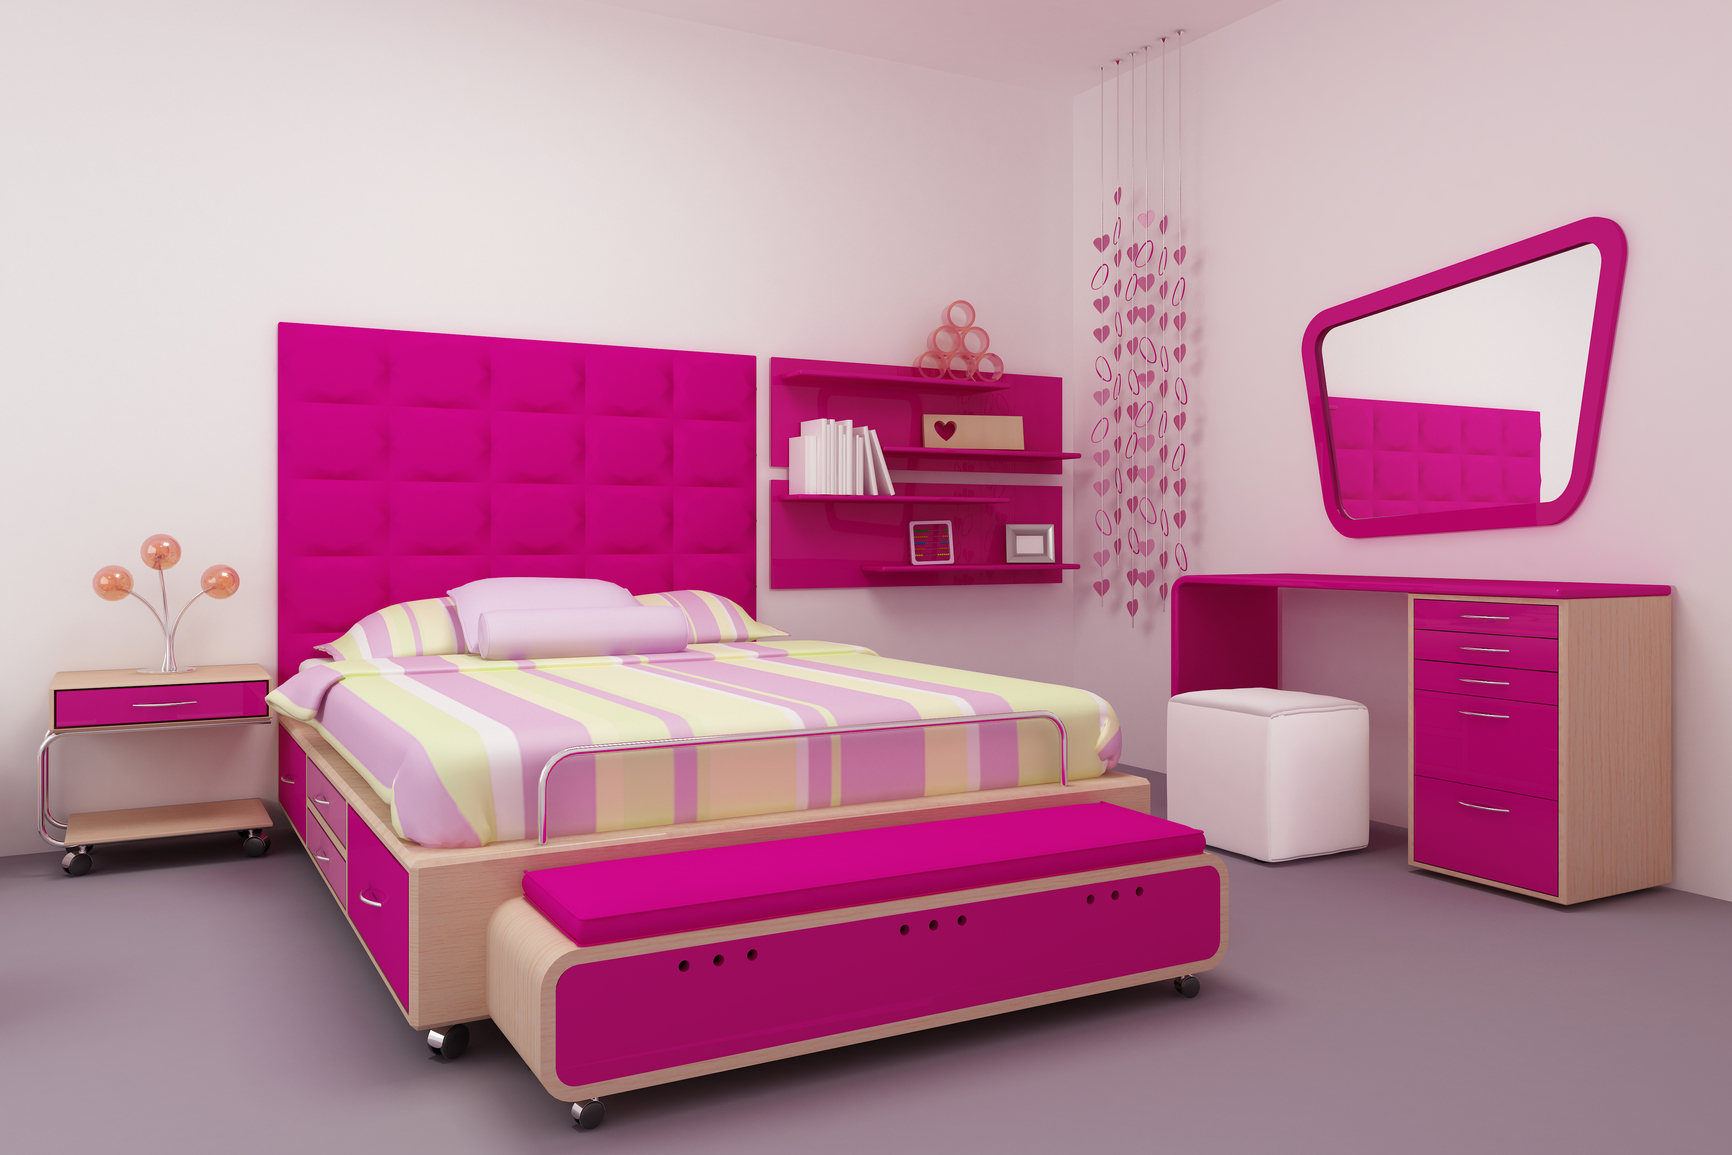 Pink Bedroom Styles For Girls With Dressing Room (Image 1 of 1)